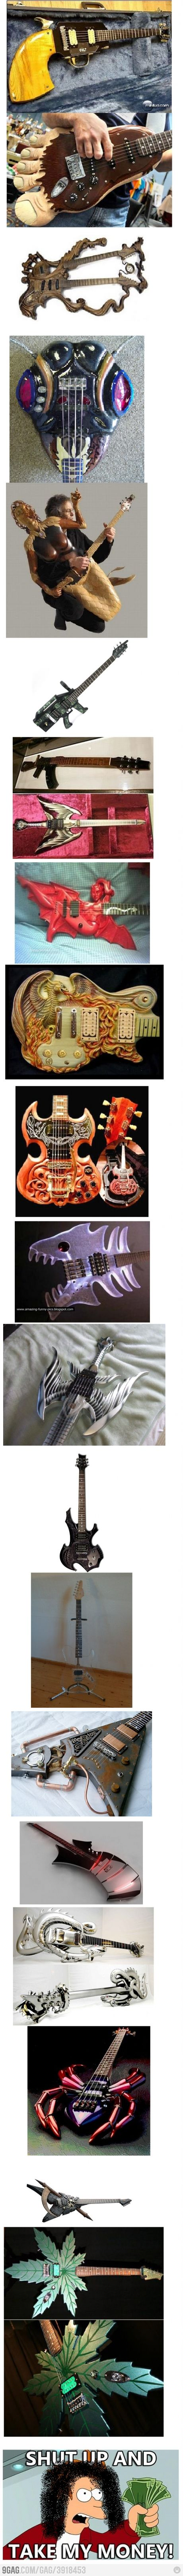 Sorry for the long post; but these guitars are awesome!